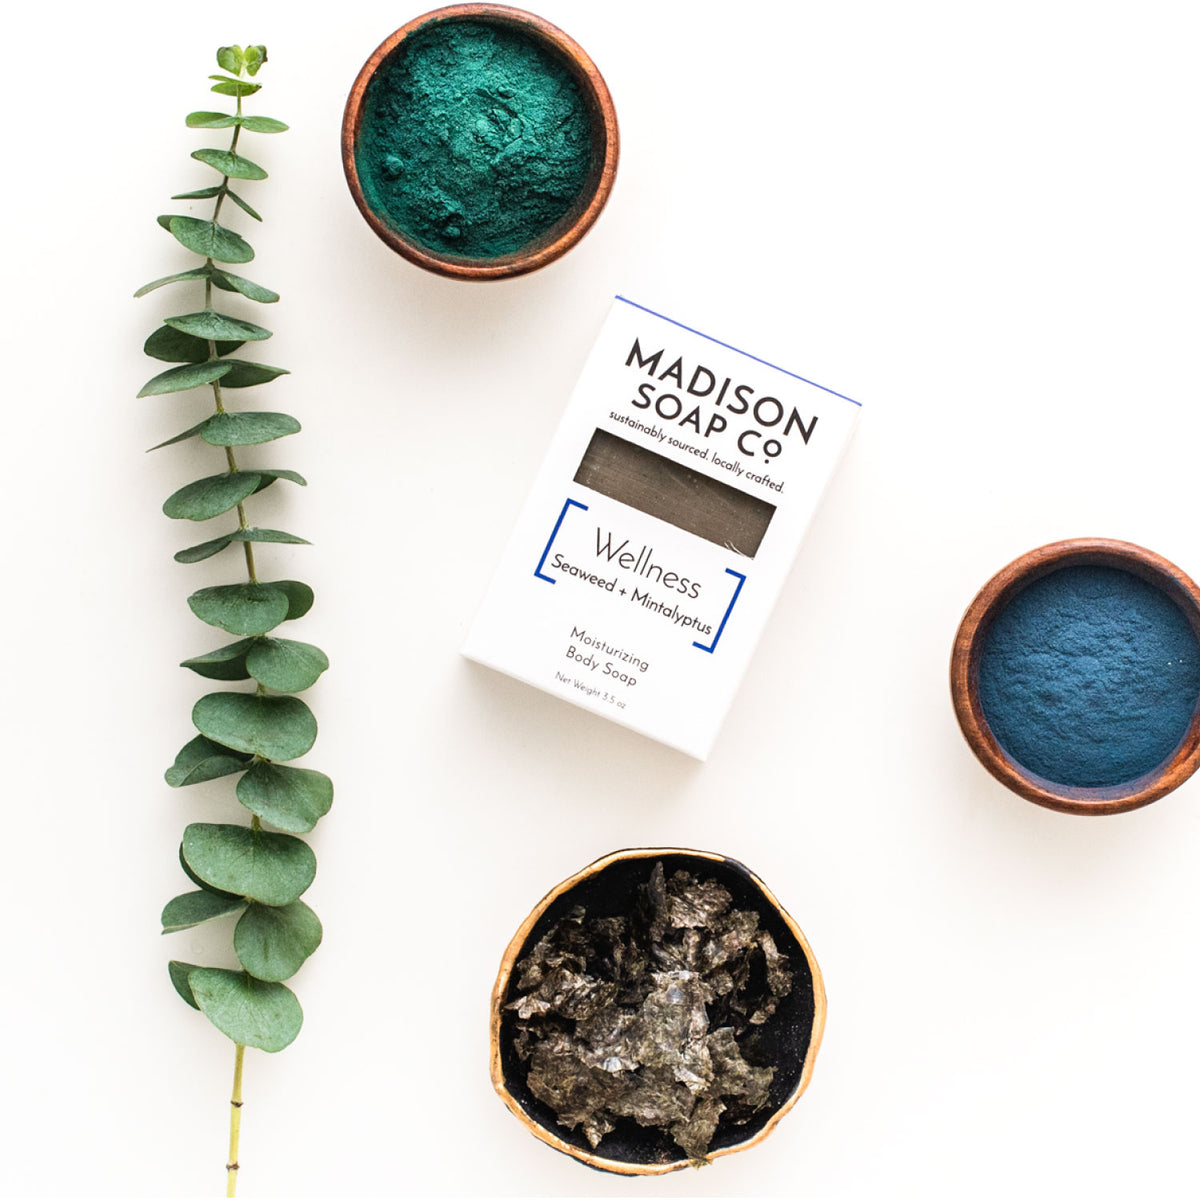 """Wellness"" Seaweed + Mintalyptus Bar Soap Soap by Madison Soap Company from Madison Soap Company"